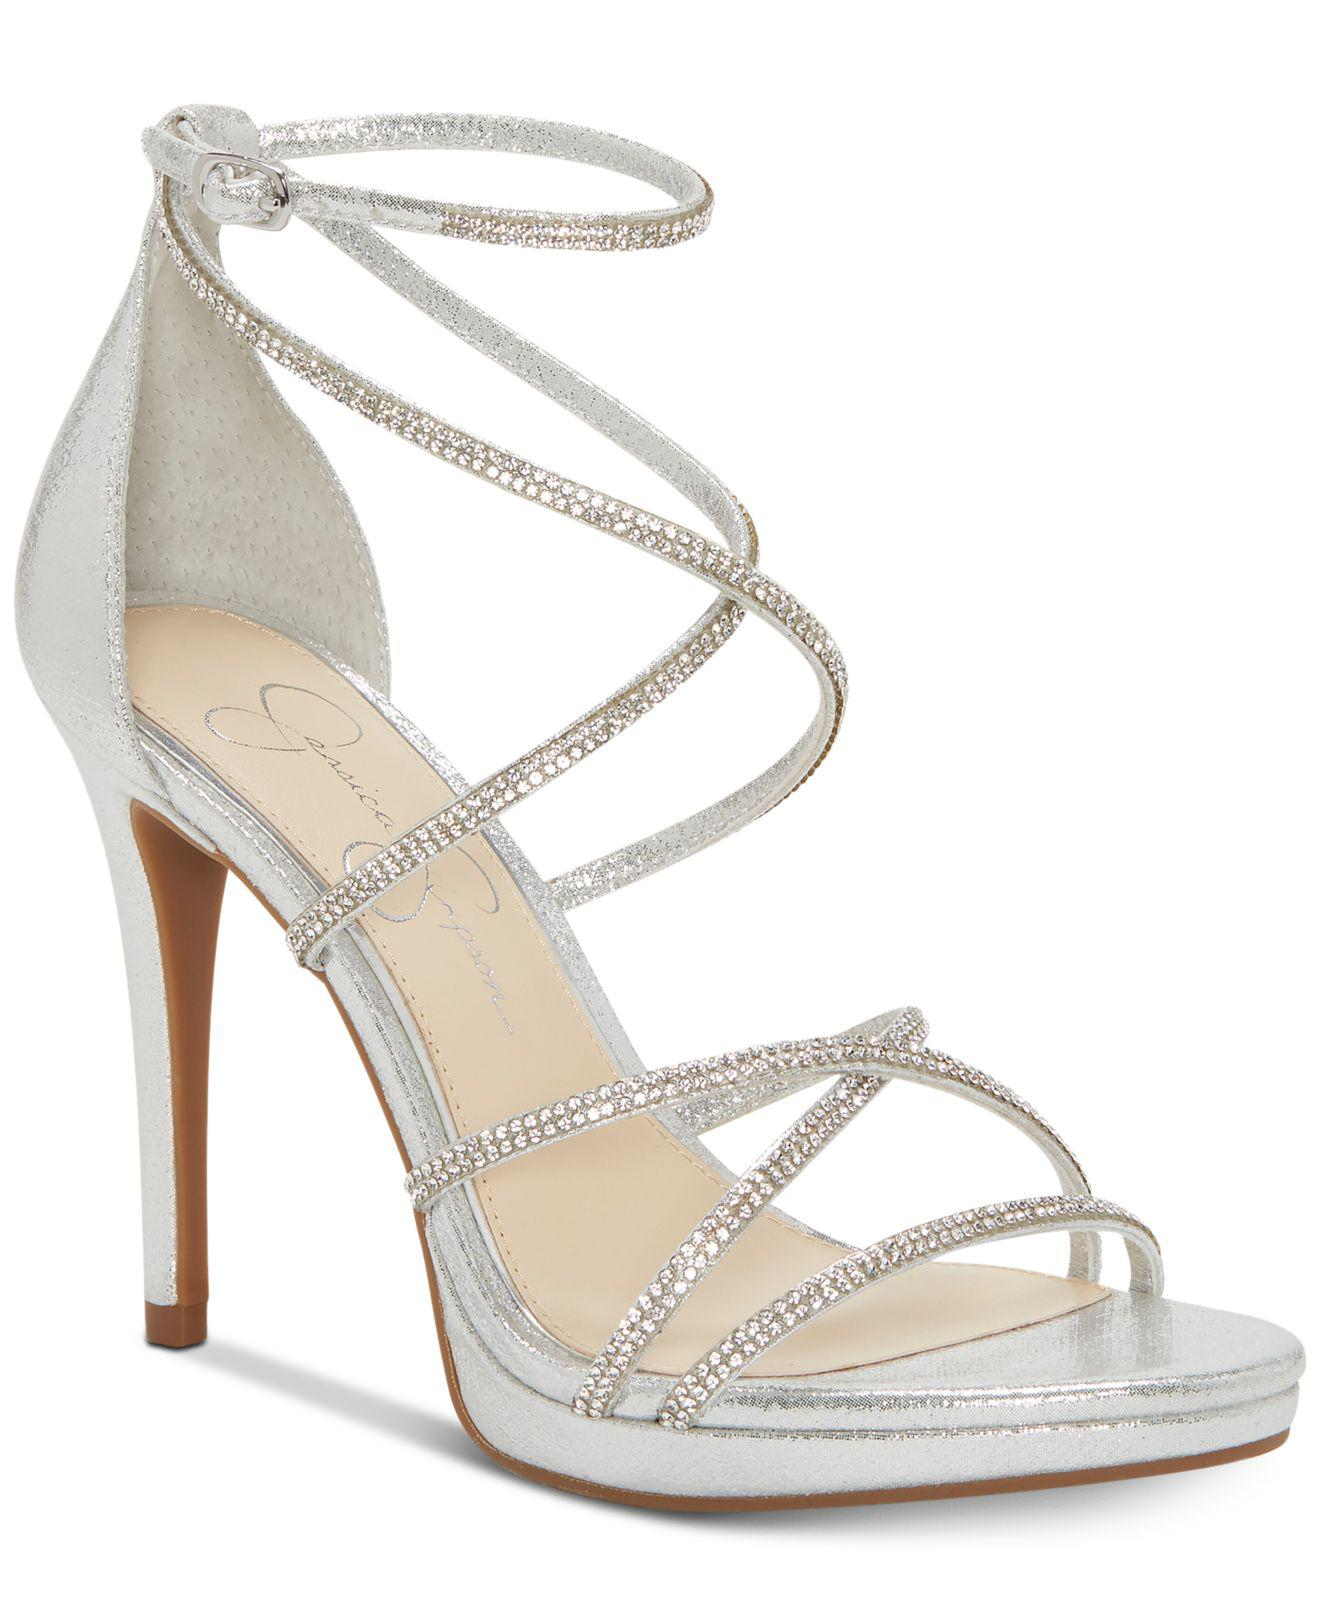 18c21199ad6 Jessica Simpson. Women s Jaeya Strappy Dress Sandals